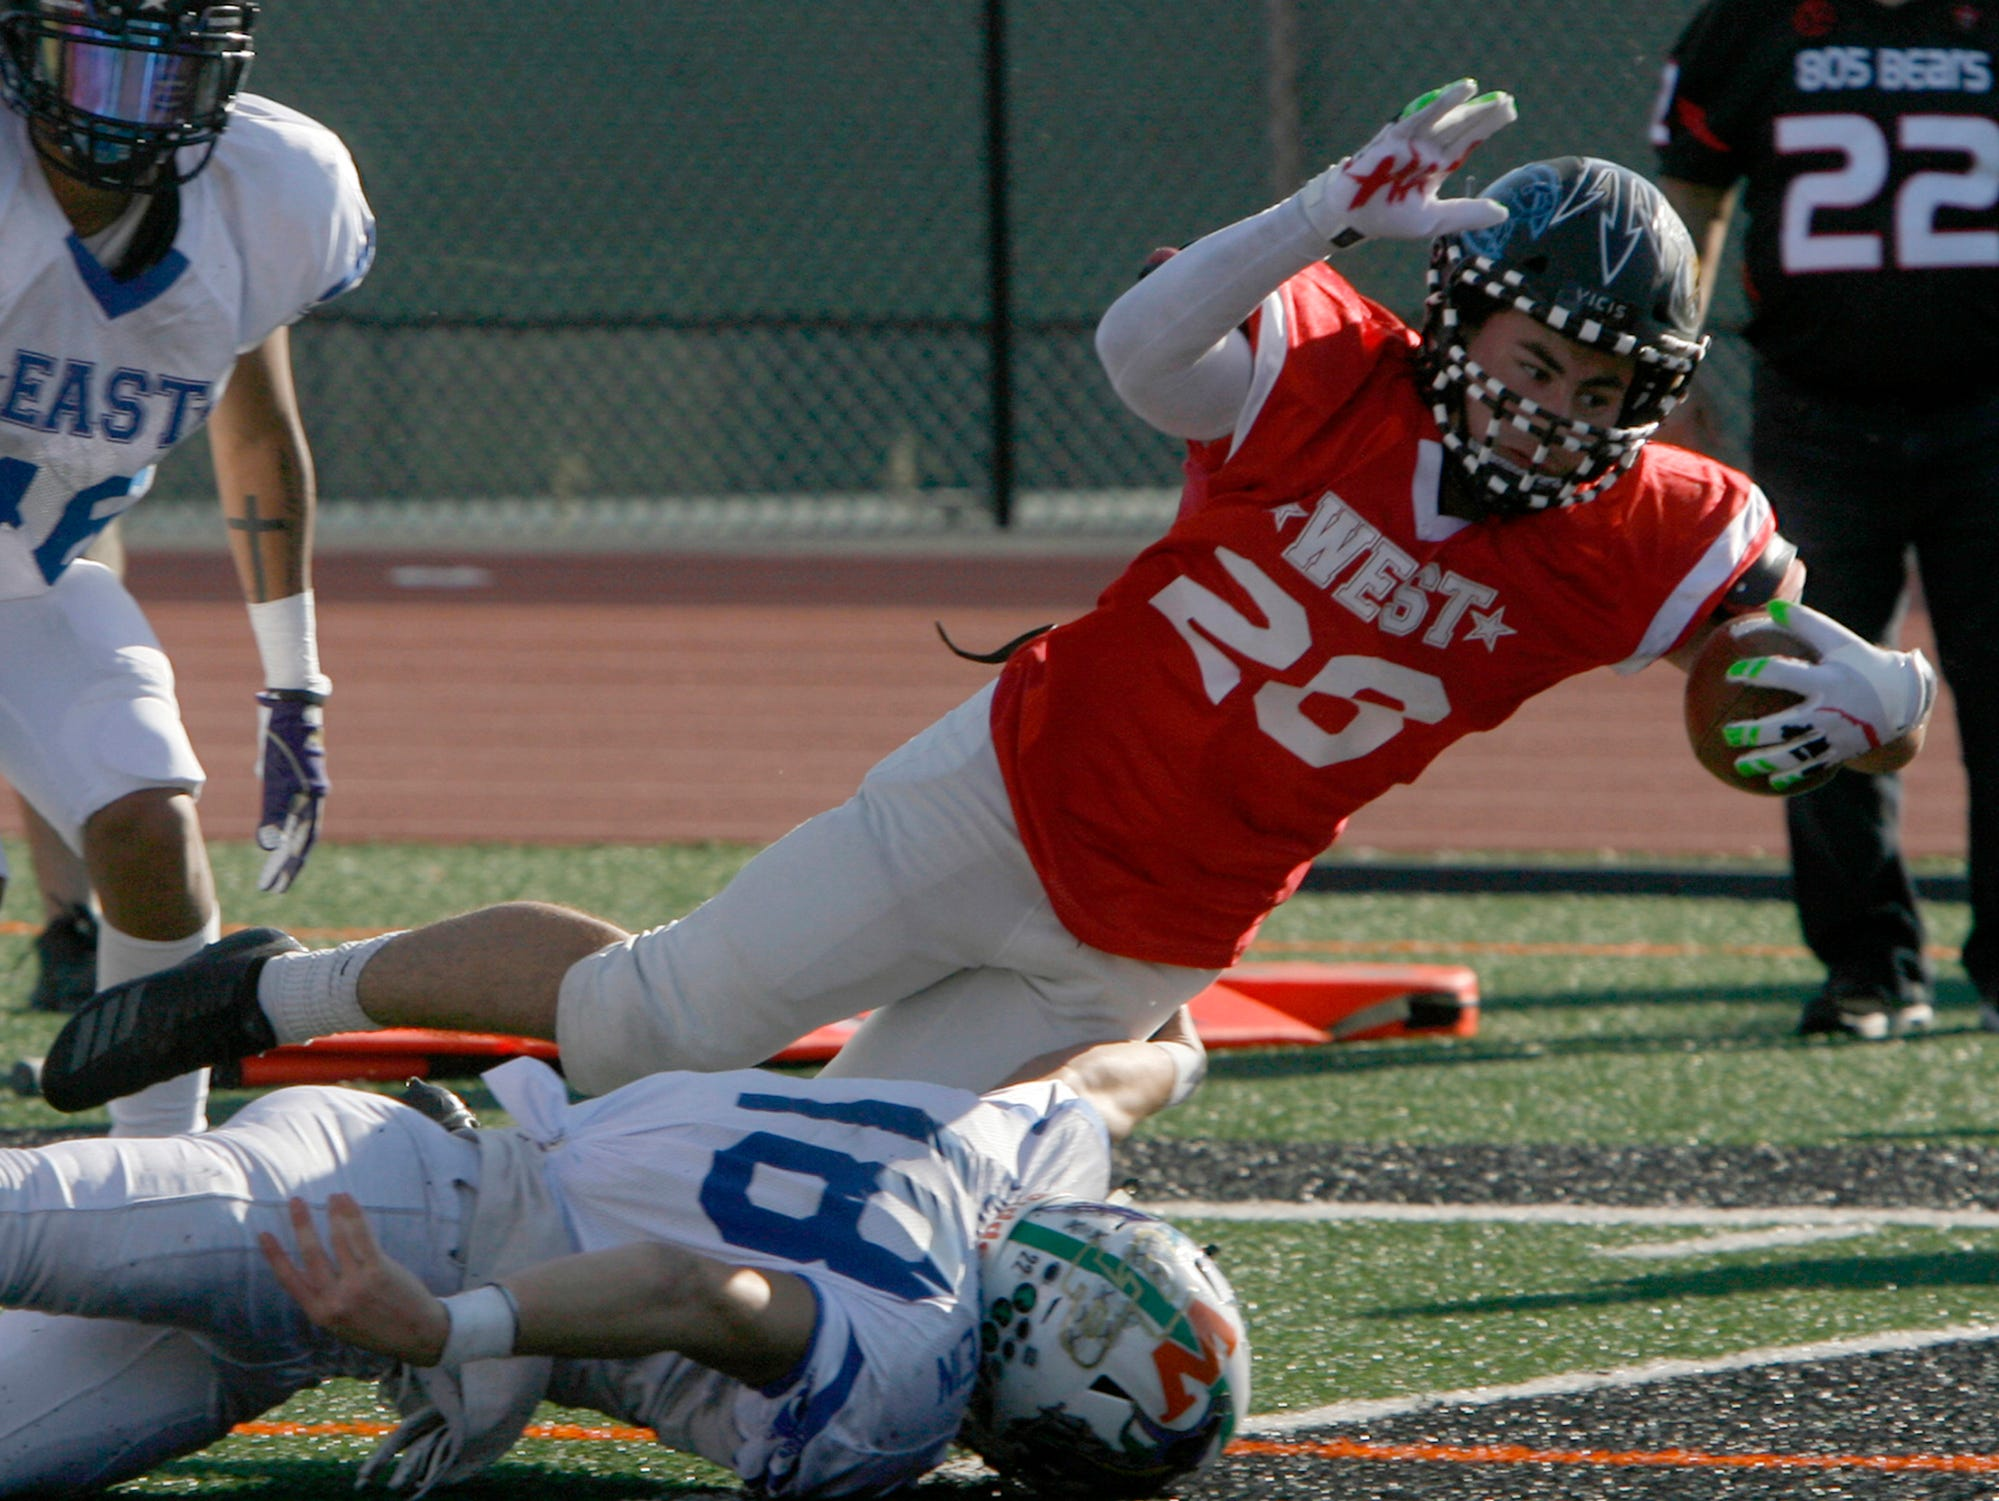 West All-Star running back Noah Conboy dives over East All-Star linebacker Andrew Lichtenstein for a touchdown during the West's 35-24 victory in the 46th annual Ventura County High School All-Star Football Game at Ventura College on Saturday.